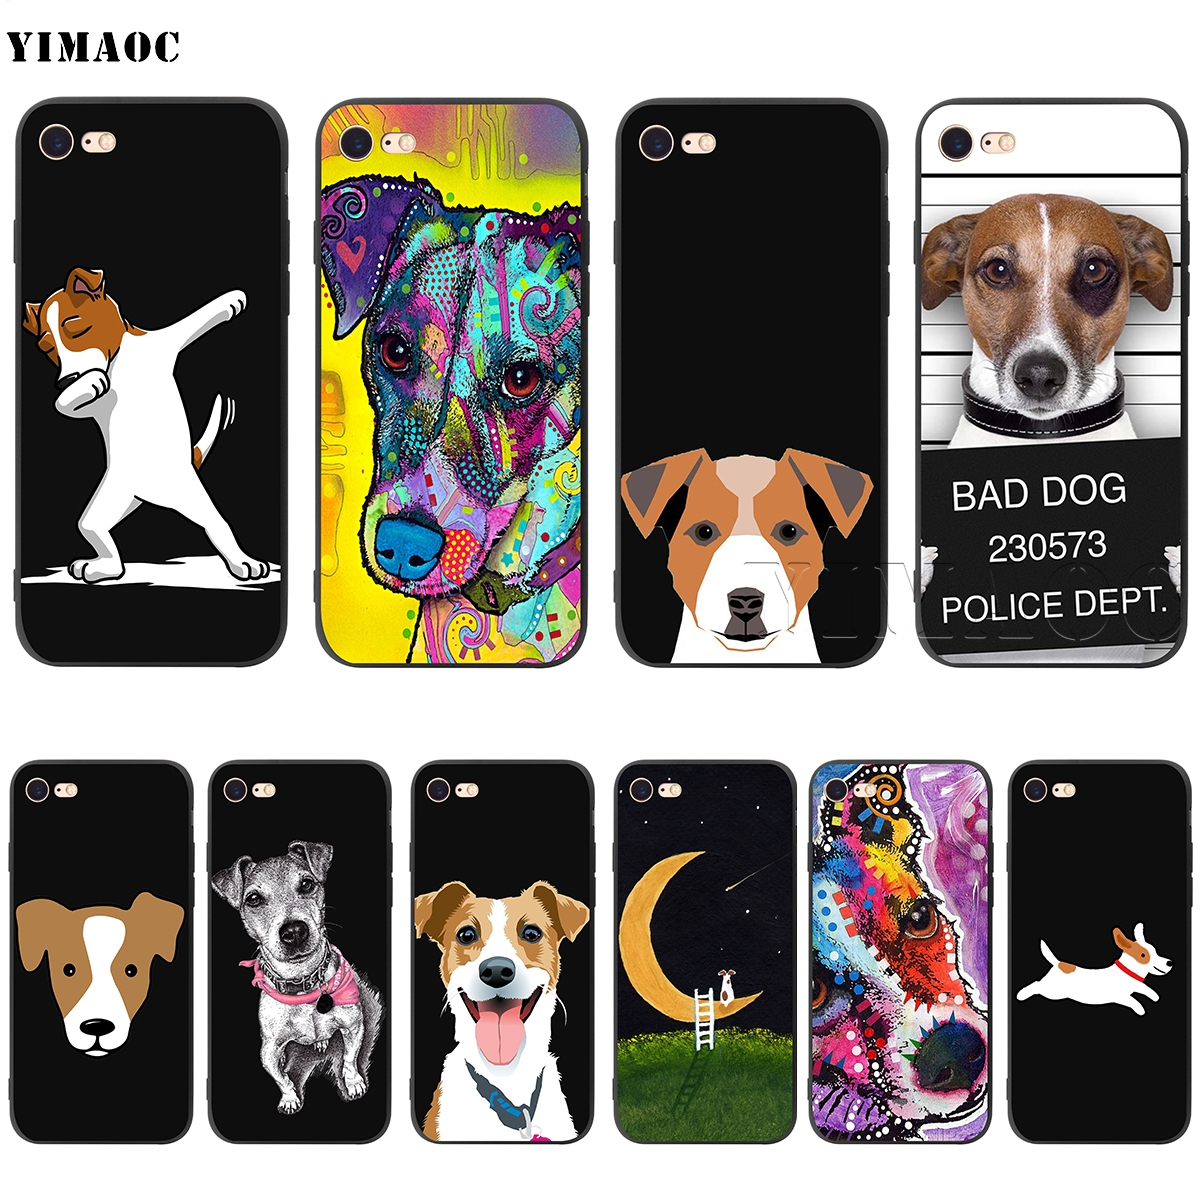 YIMAOC Jack Russell Terrier Silicone Soft Case For IPhone 11 Pro XS Max XR X 8 7 6 6S Plus 5 5S SE